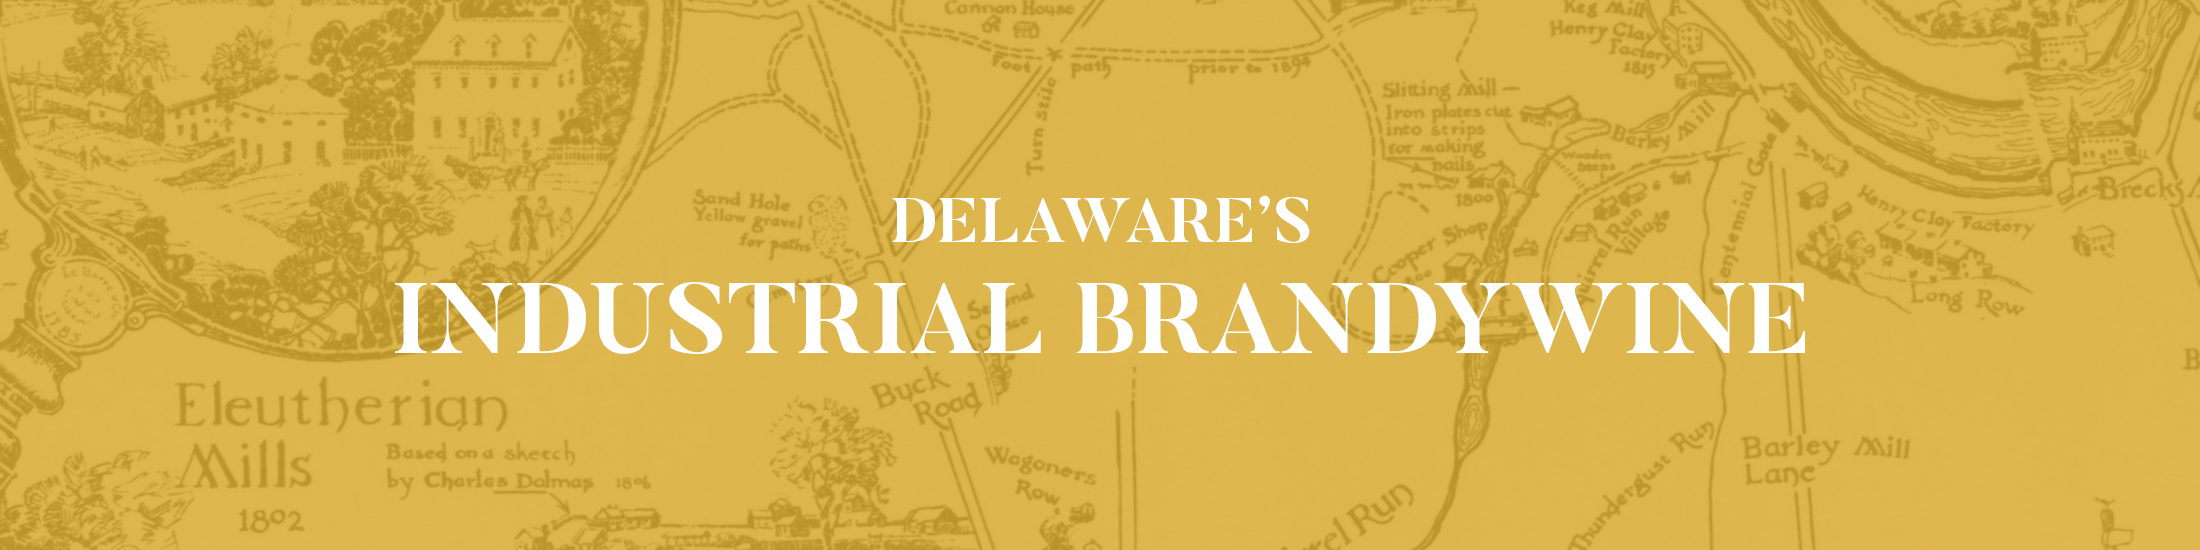 Delaware's Industrial Brandywine Digital Exhibit